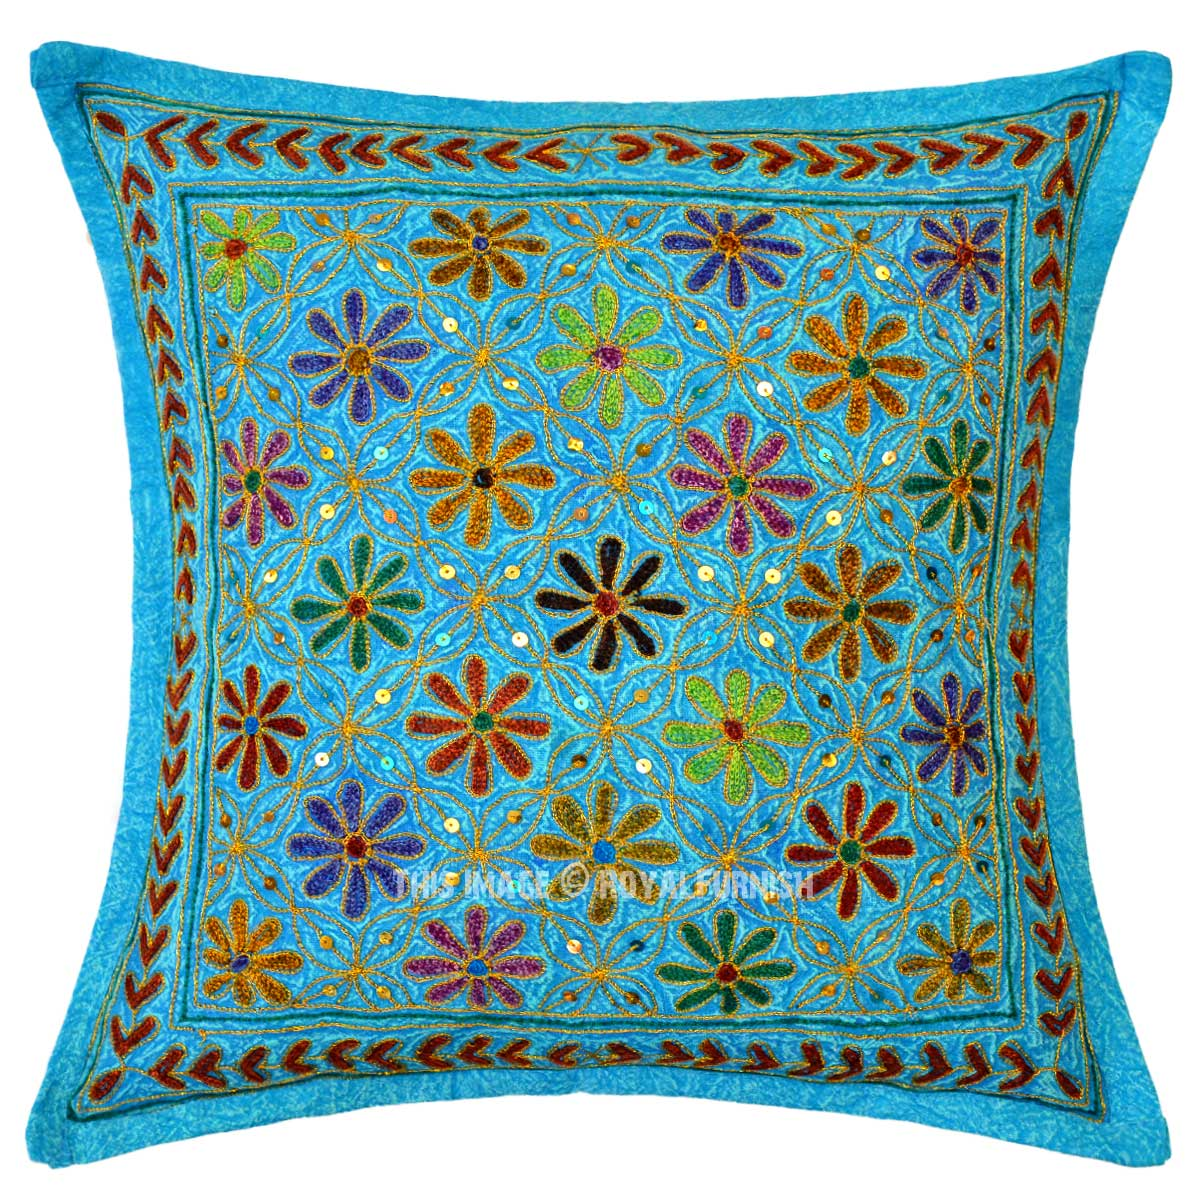 Decorative Pillows In Turquoise : Turquoise Blue Decorative Needlepoint Embroidered Cotton Throw Pillow Cover 16X16 - RoyalFurnish.com